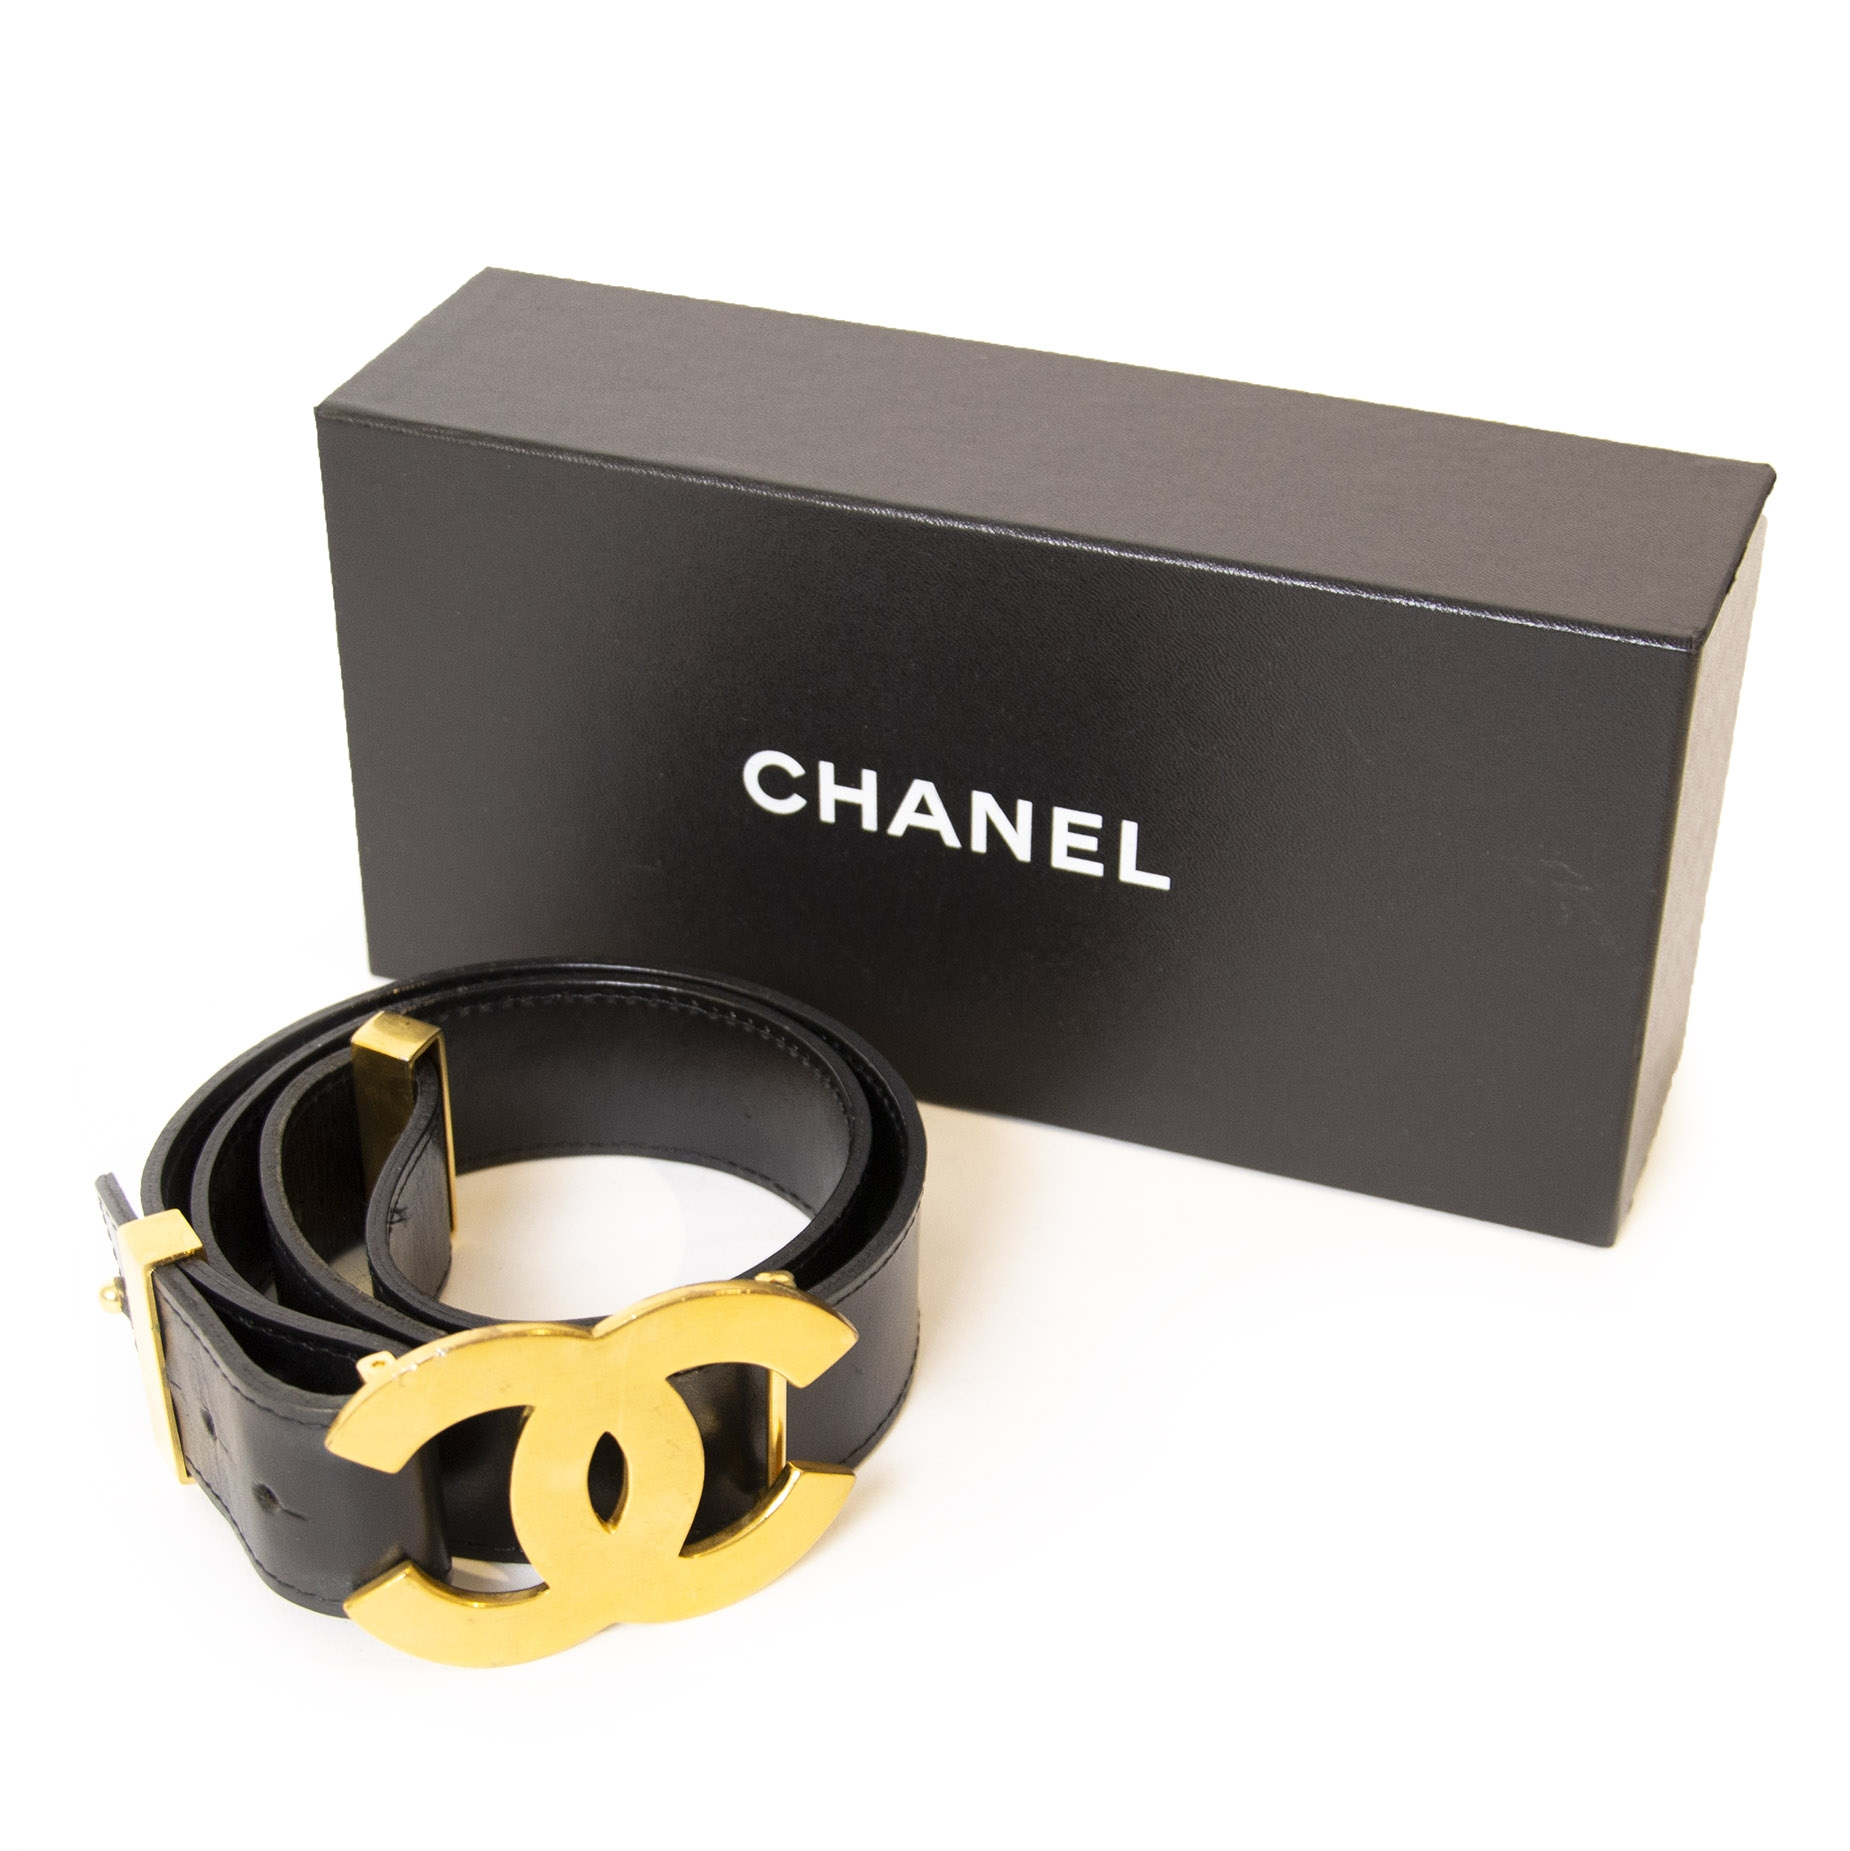 Chanel Black Leather Gold CC Logo Belt - Size 80 buy and sell luxury